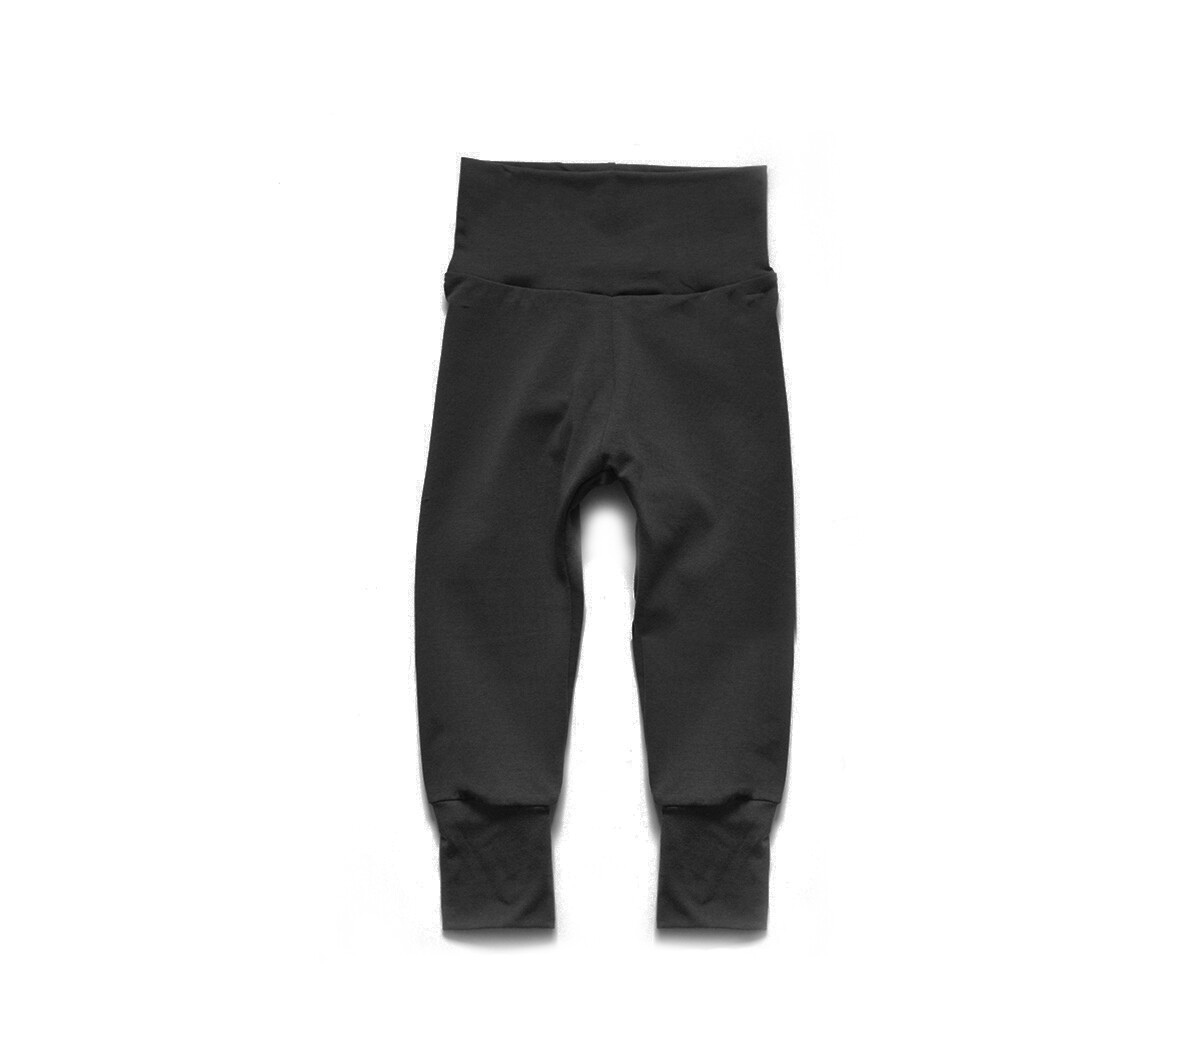 Little Sprout Pants™ in Black | Grow With Me Leggings - Organic Cotton